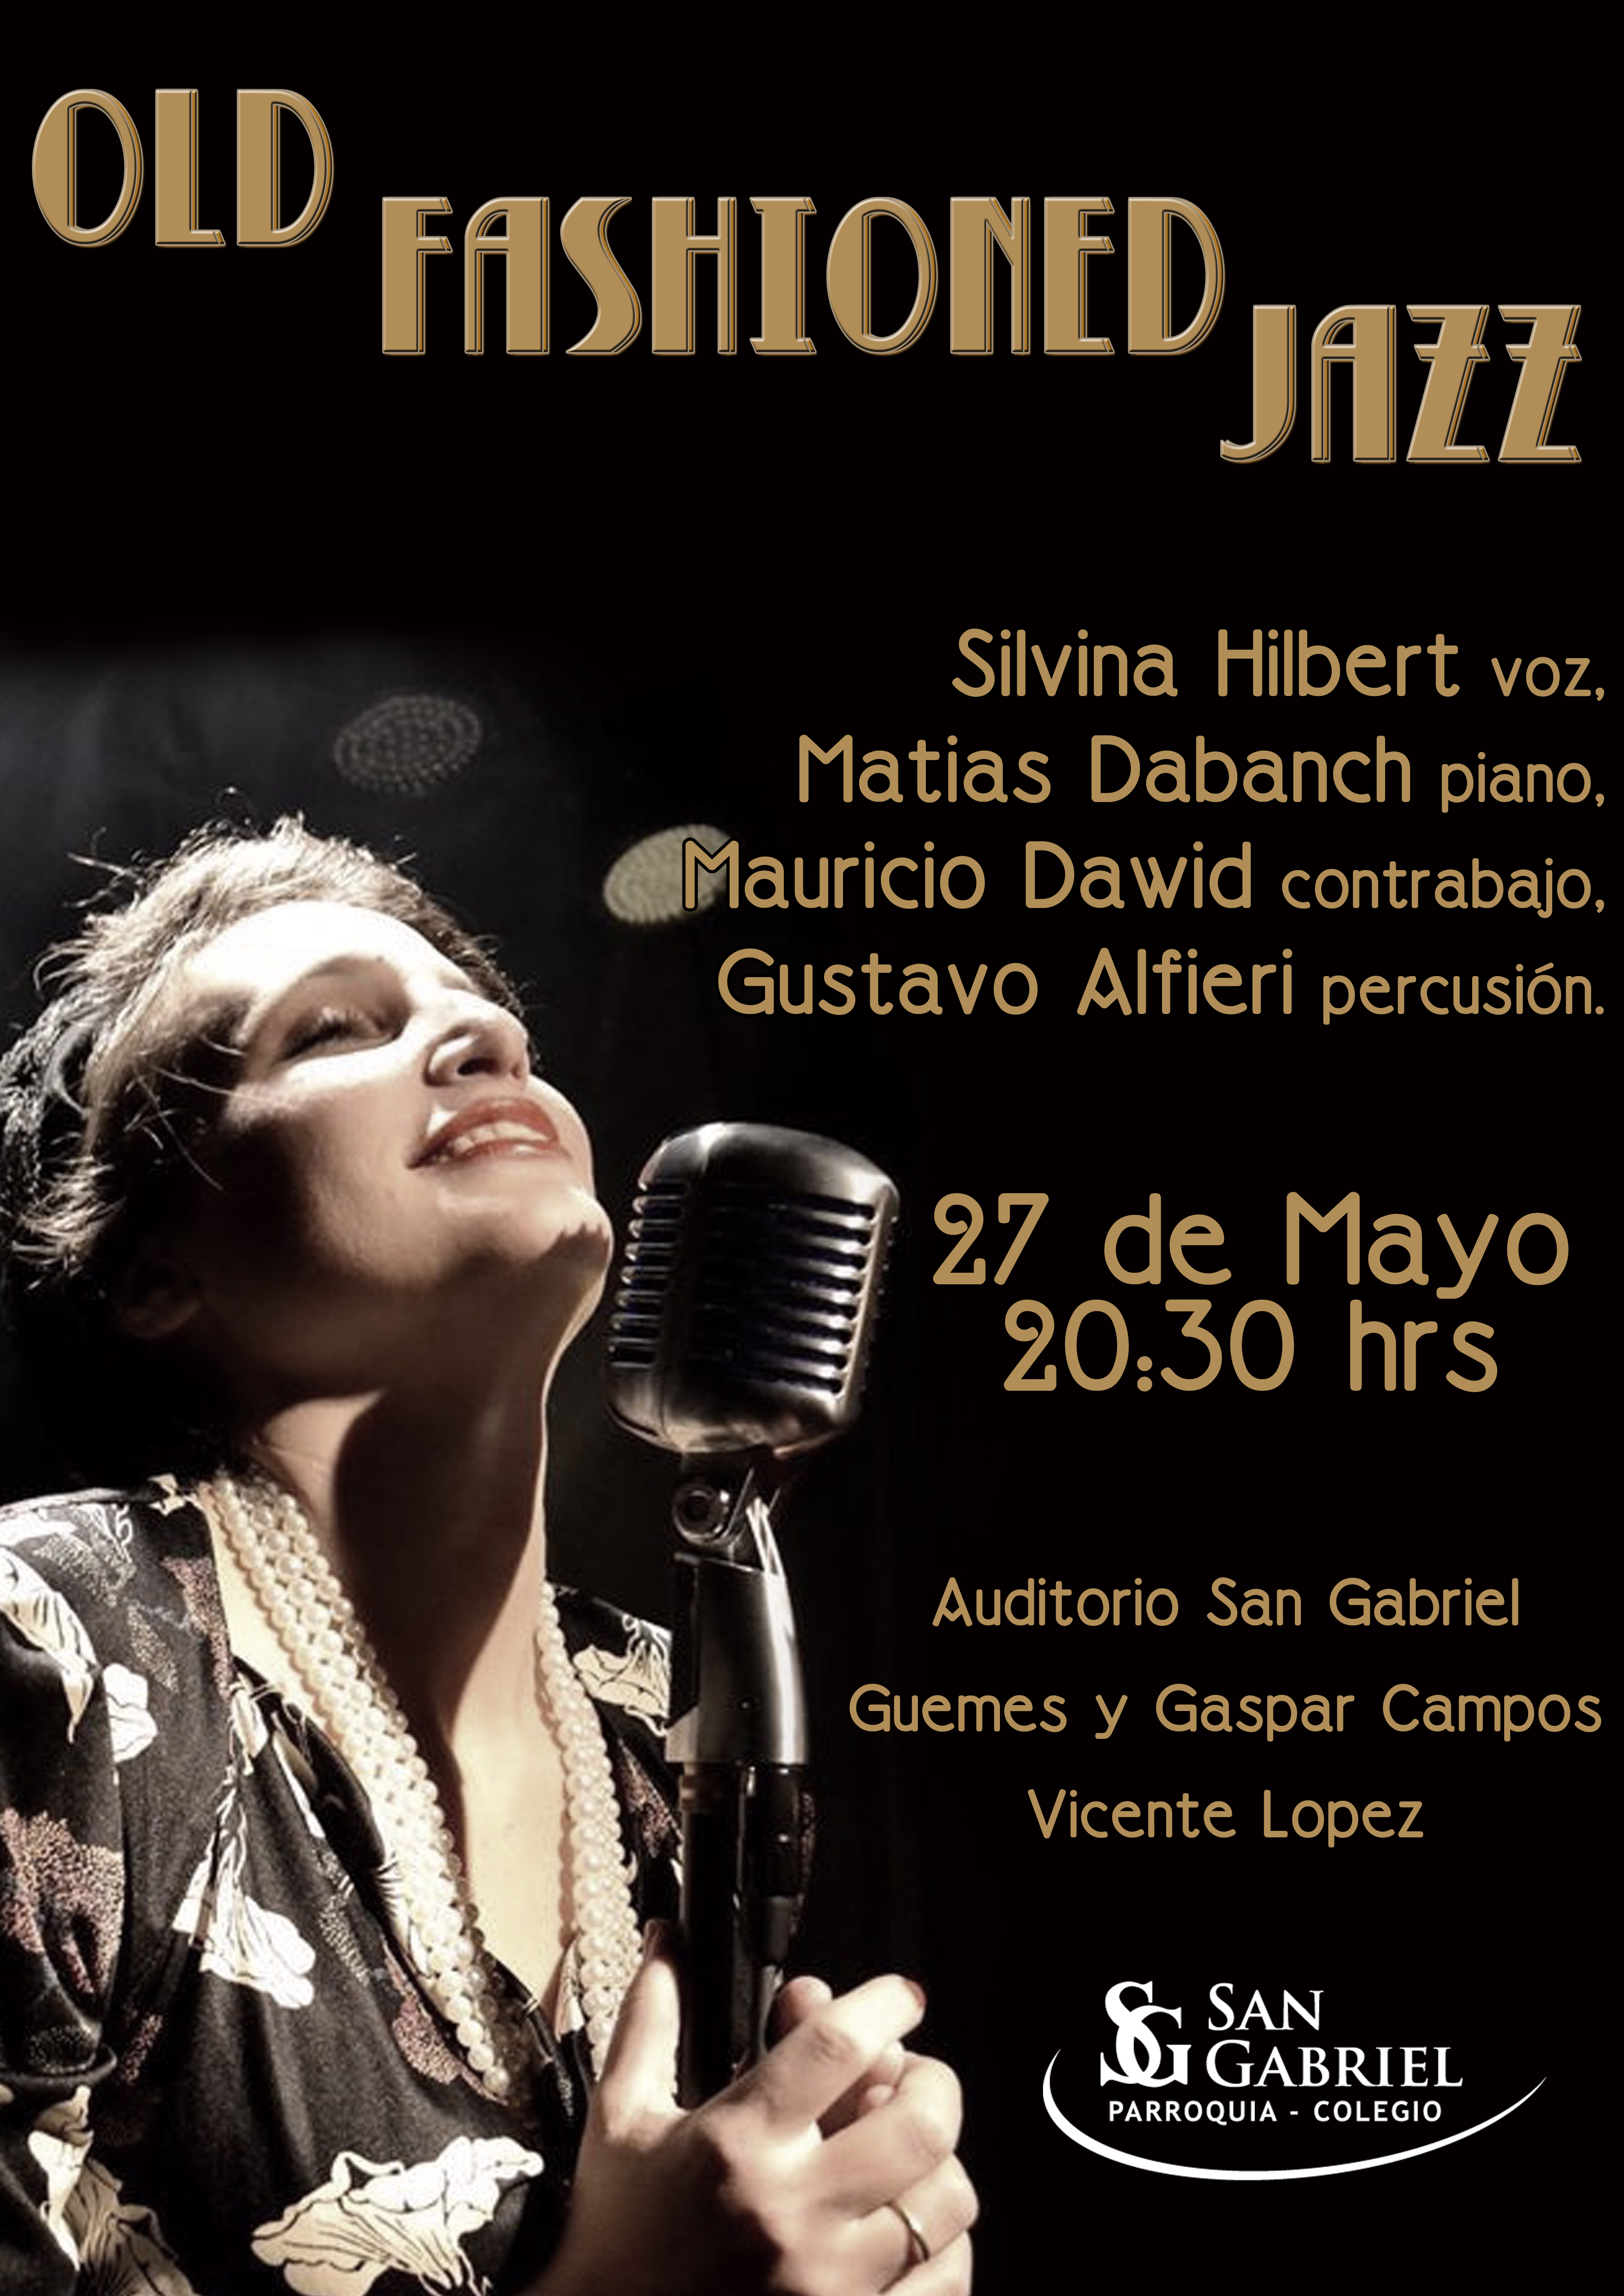 Old Fashioned Jazz, sábado 27 de mayo, 20,30hs